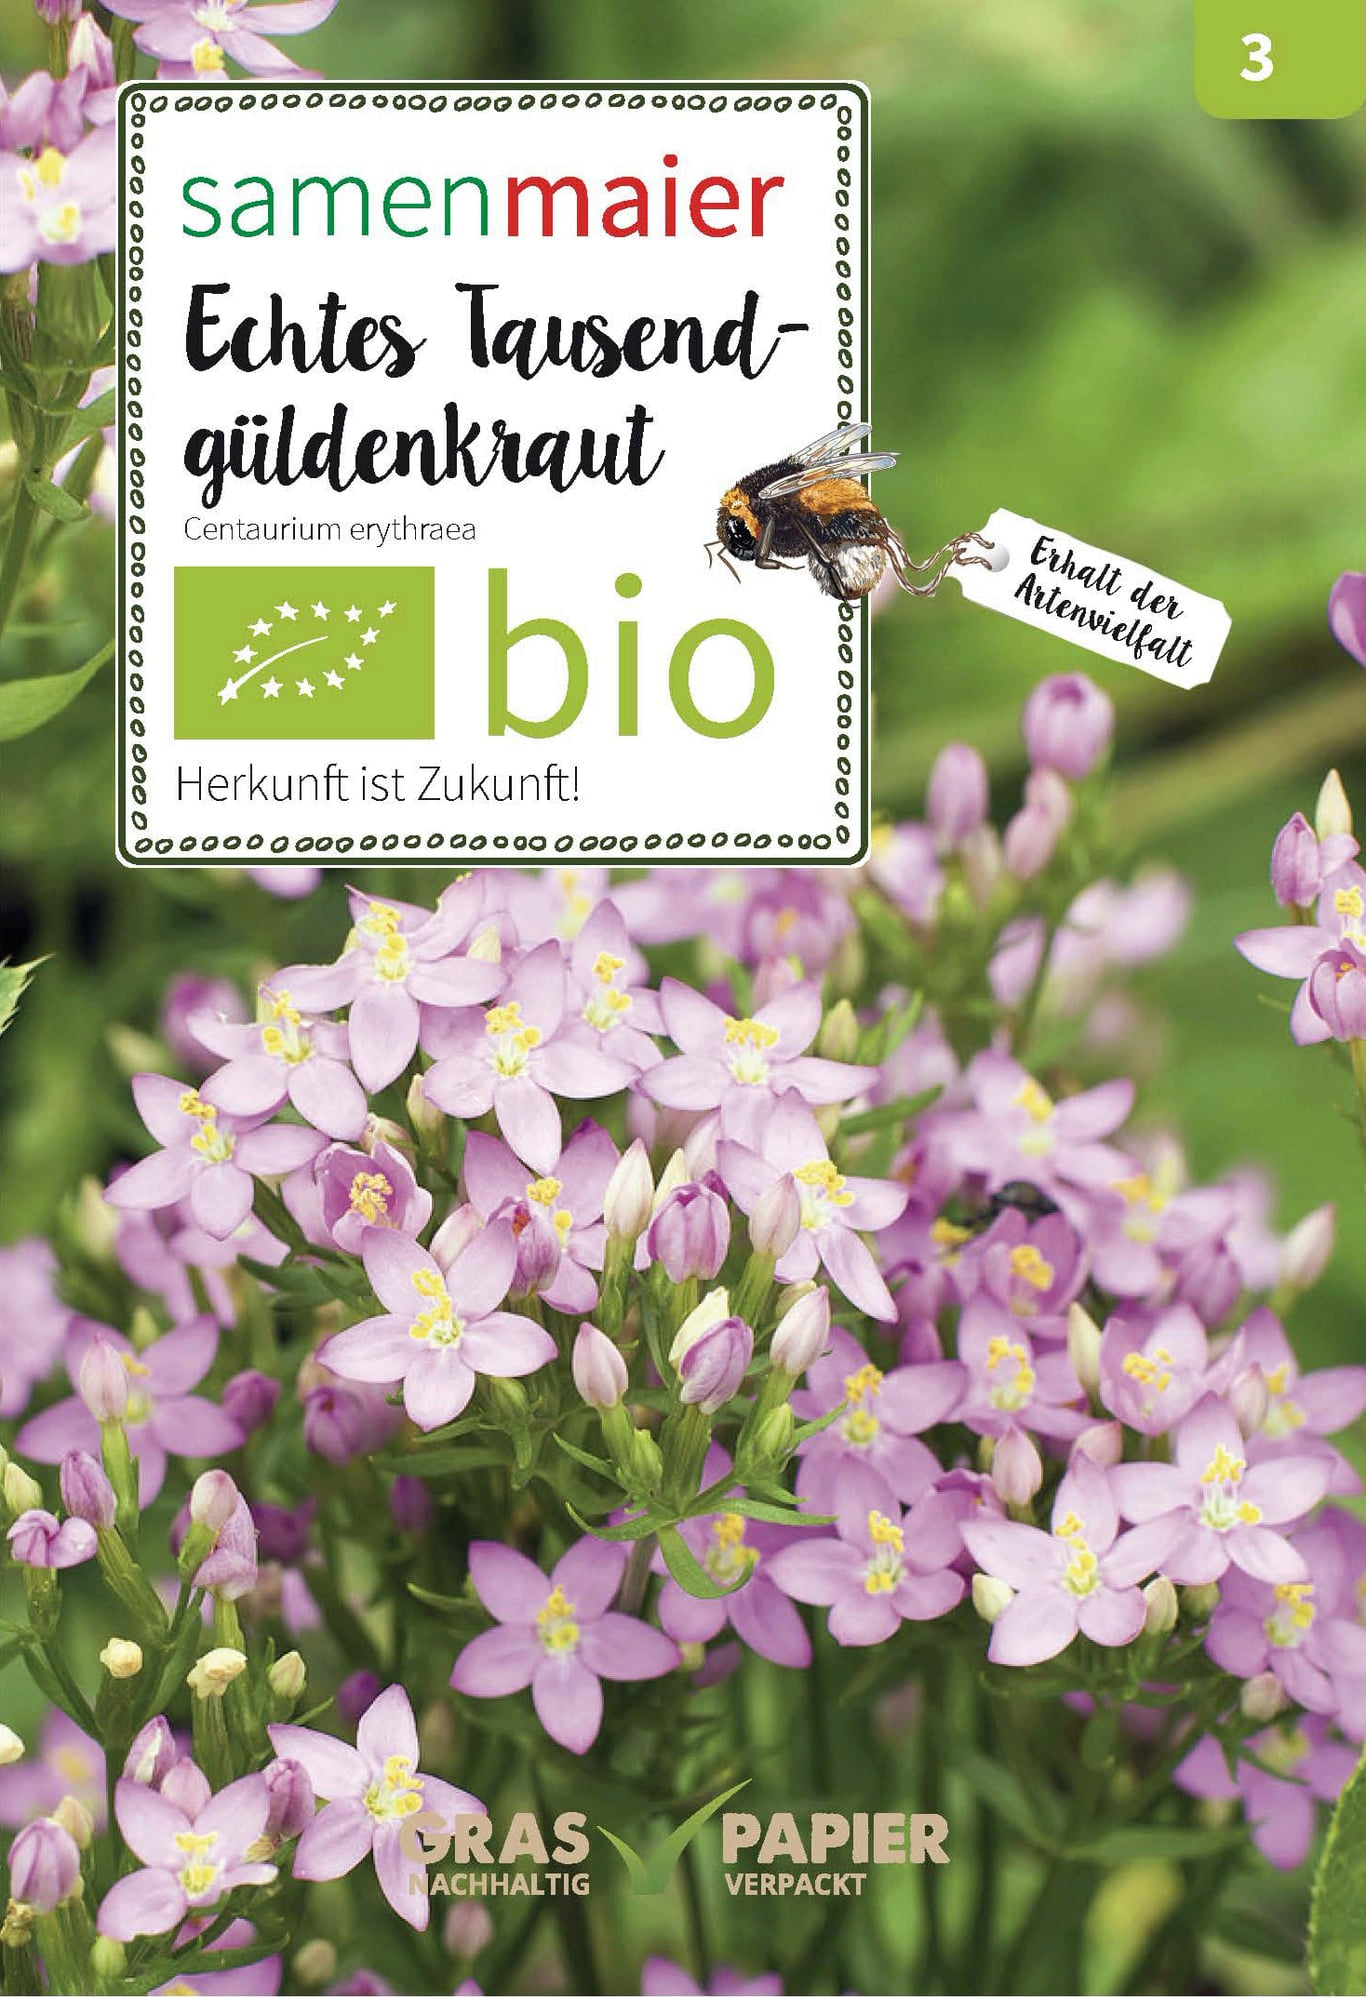 Cosmea Samen Samen Maier Organic Wildflower Centaury, 1 Package - Bloomling International